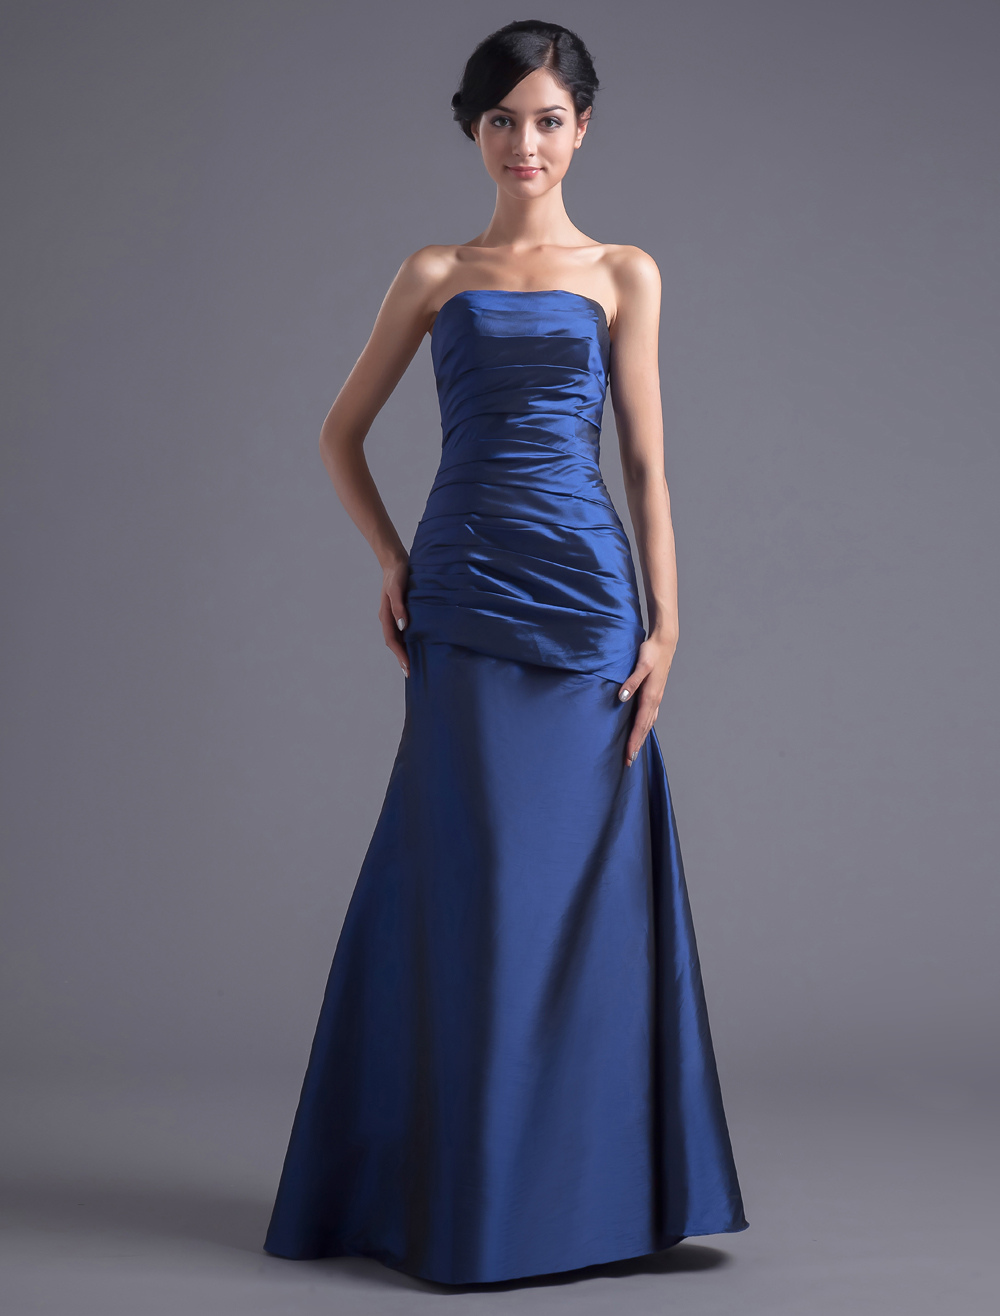 Sheath Royal Blue Taffeta Strapless Bridesmaid Dress For Wedding